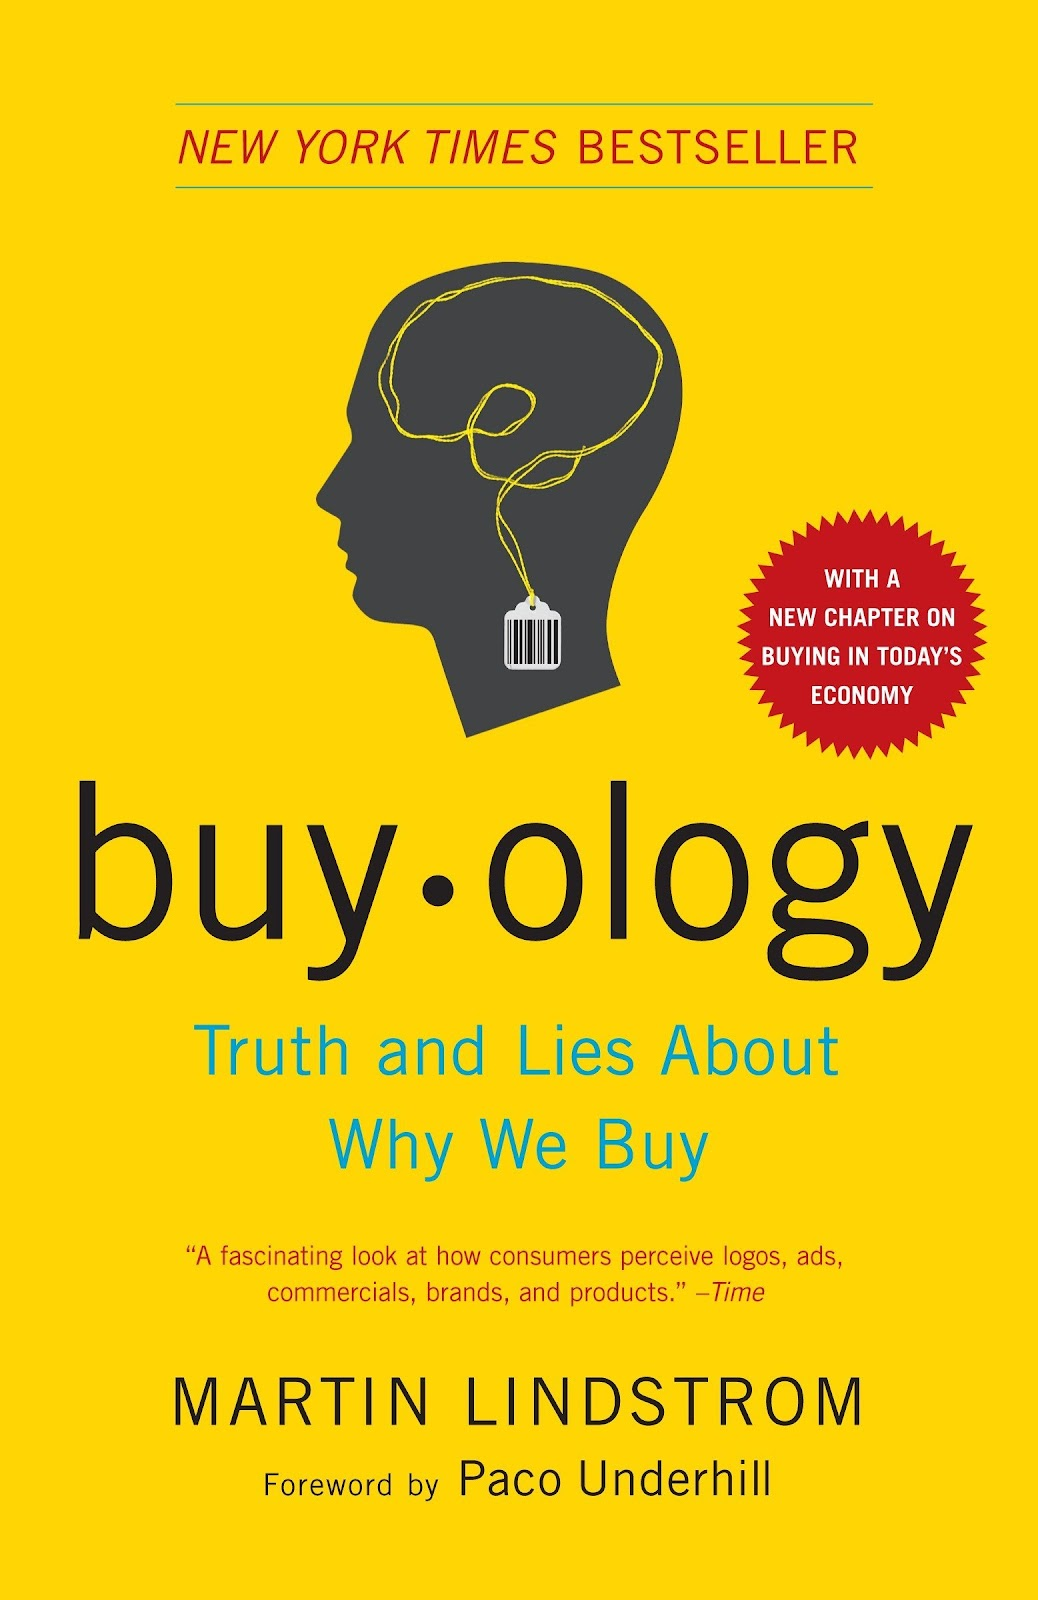 Buy-ology by Martin Lindstrom